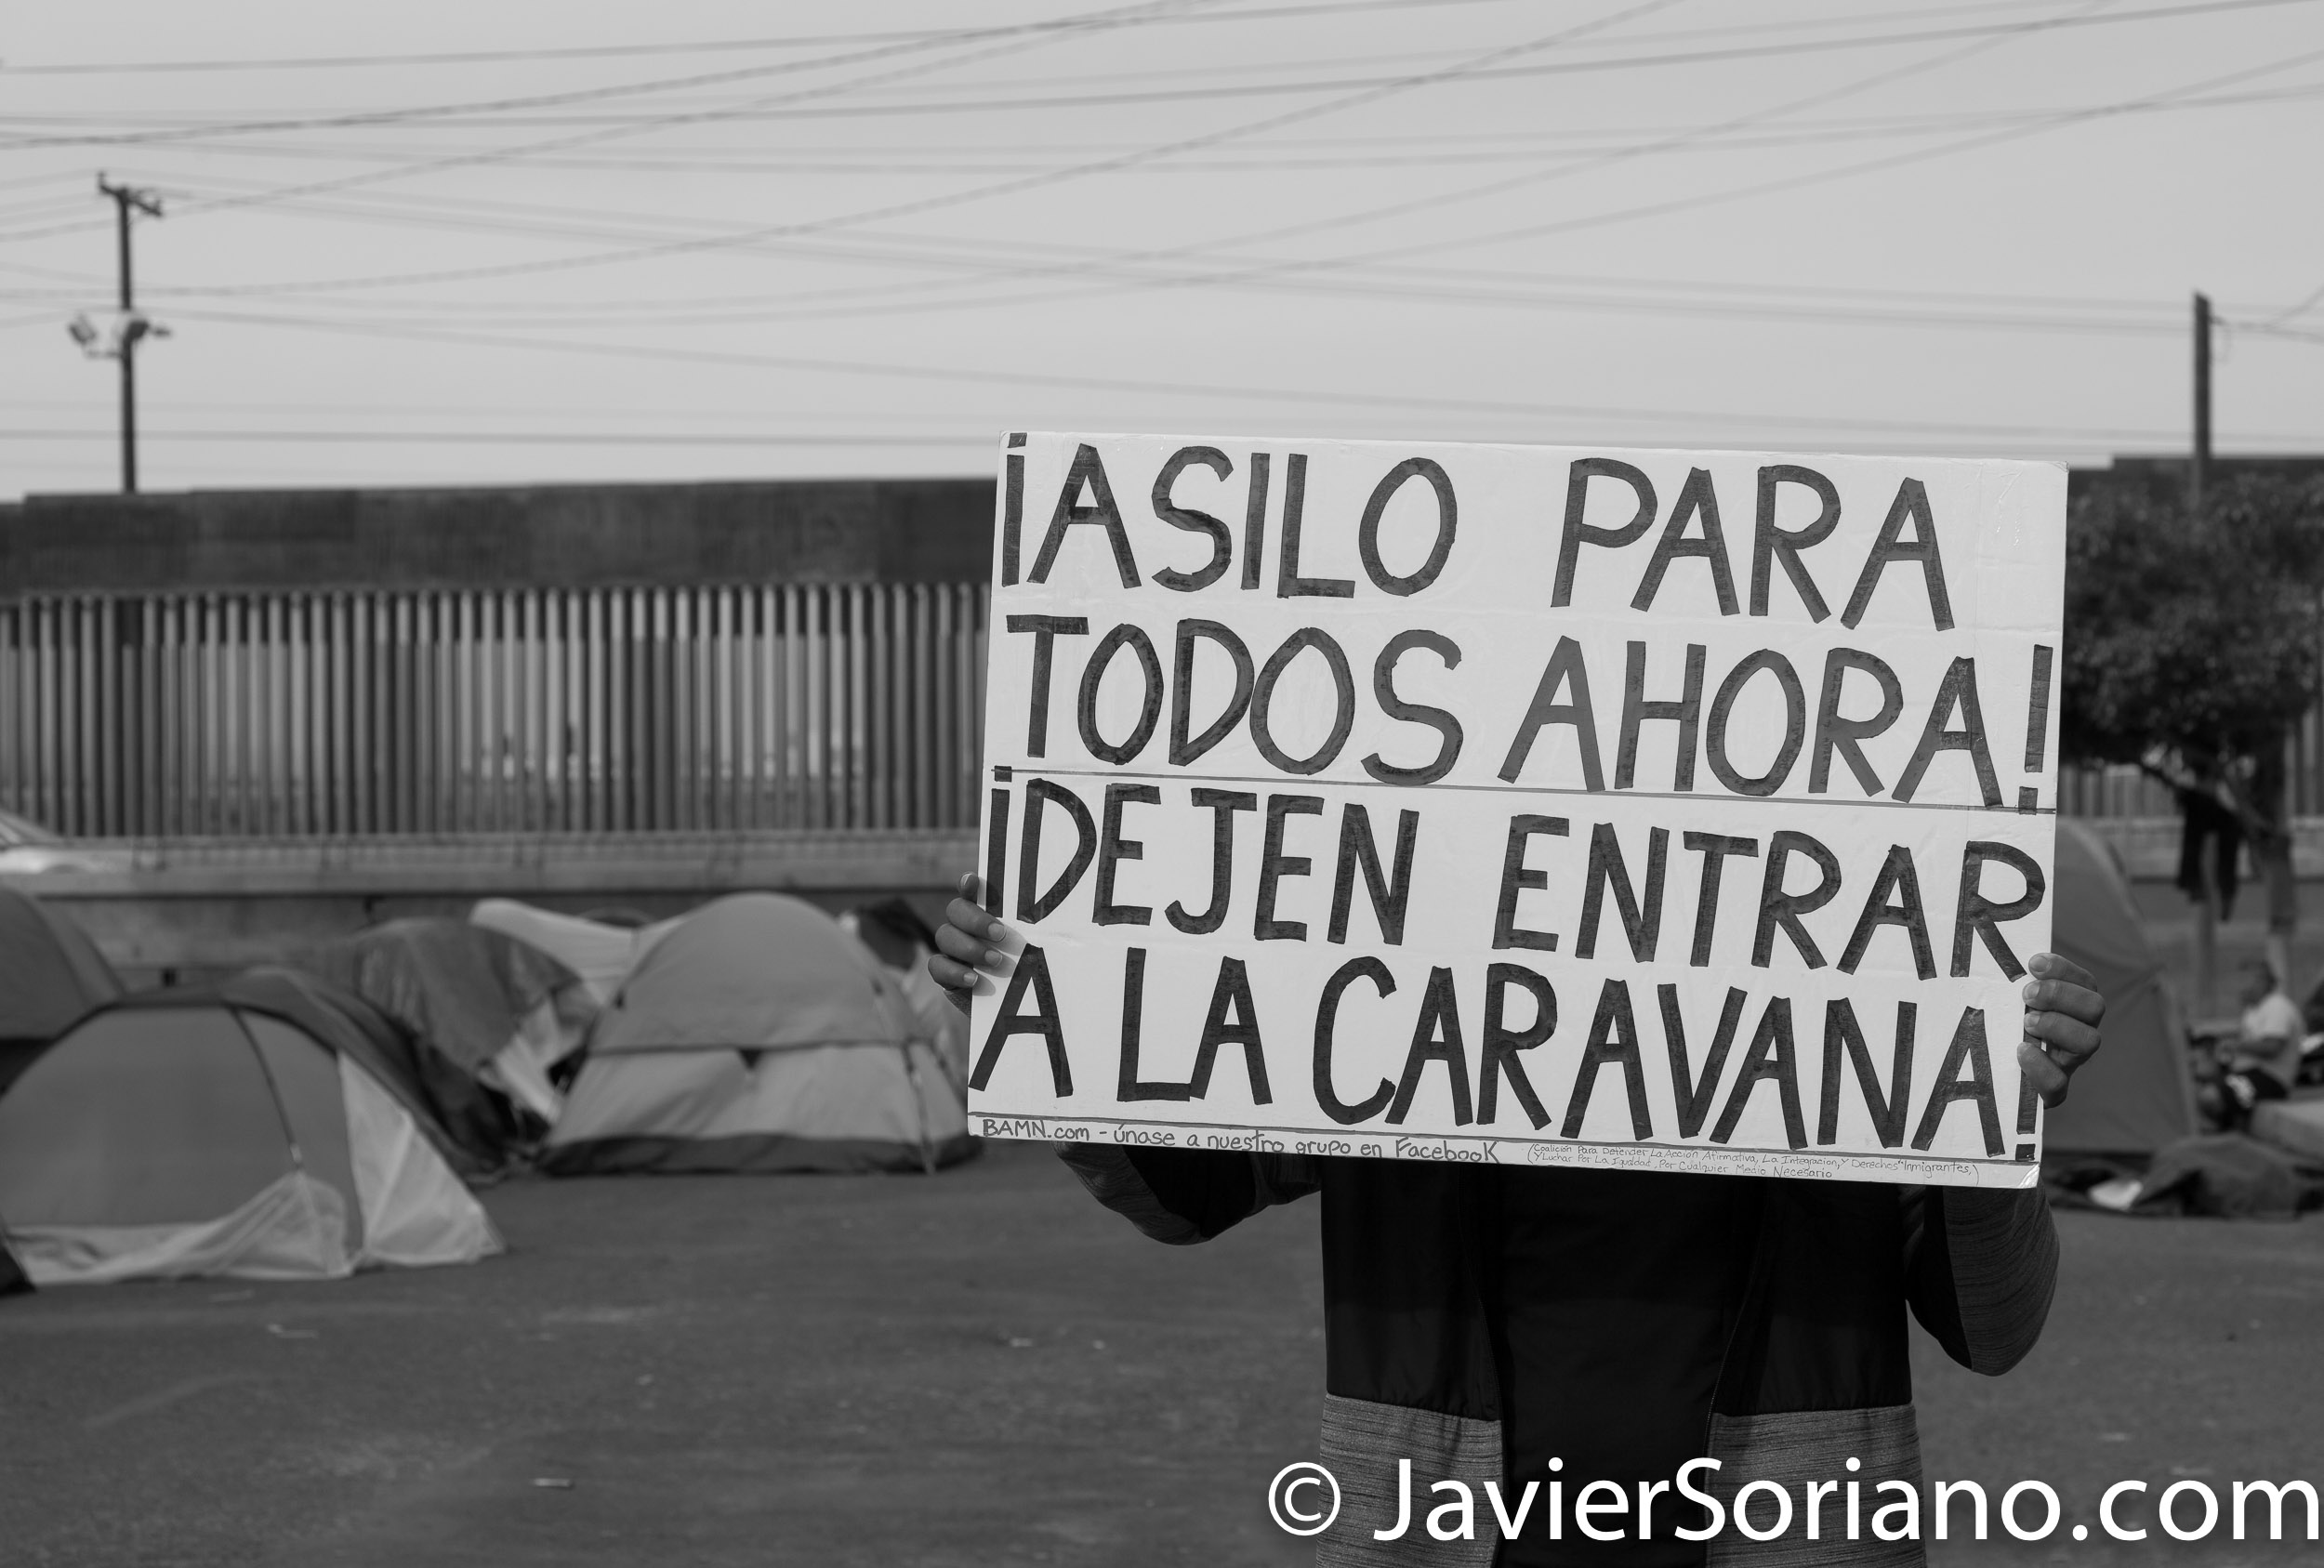 "THIS PHOTO: Refugee from Centro America in Tijuana, Mexico. December/2018. Behind him is the Mexico - US border. The sign reads: ""Asylum for everyone now! Let the caravan enter (the United States of America)"". ESTA FOTO: Refugiado de Centro America en Tijuana, México. Diciembre/2018. Detrás de él está la frontera entre México y Estados Unidos. El cartel dice: ""¡Asilo para todos ahora! Dejen entrar a la caravana (a los Estados Unidos de América)"". Photo by Javier Soriano/JavierSoriano.com"